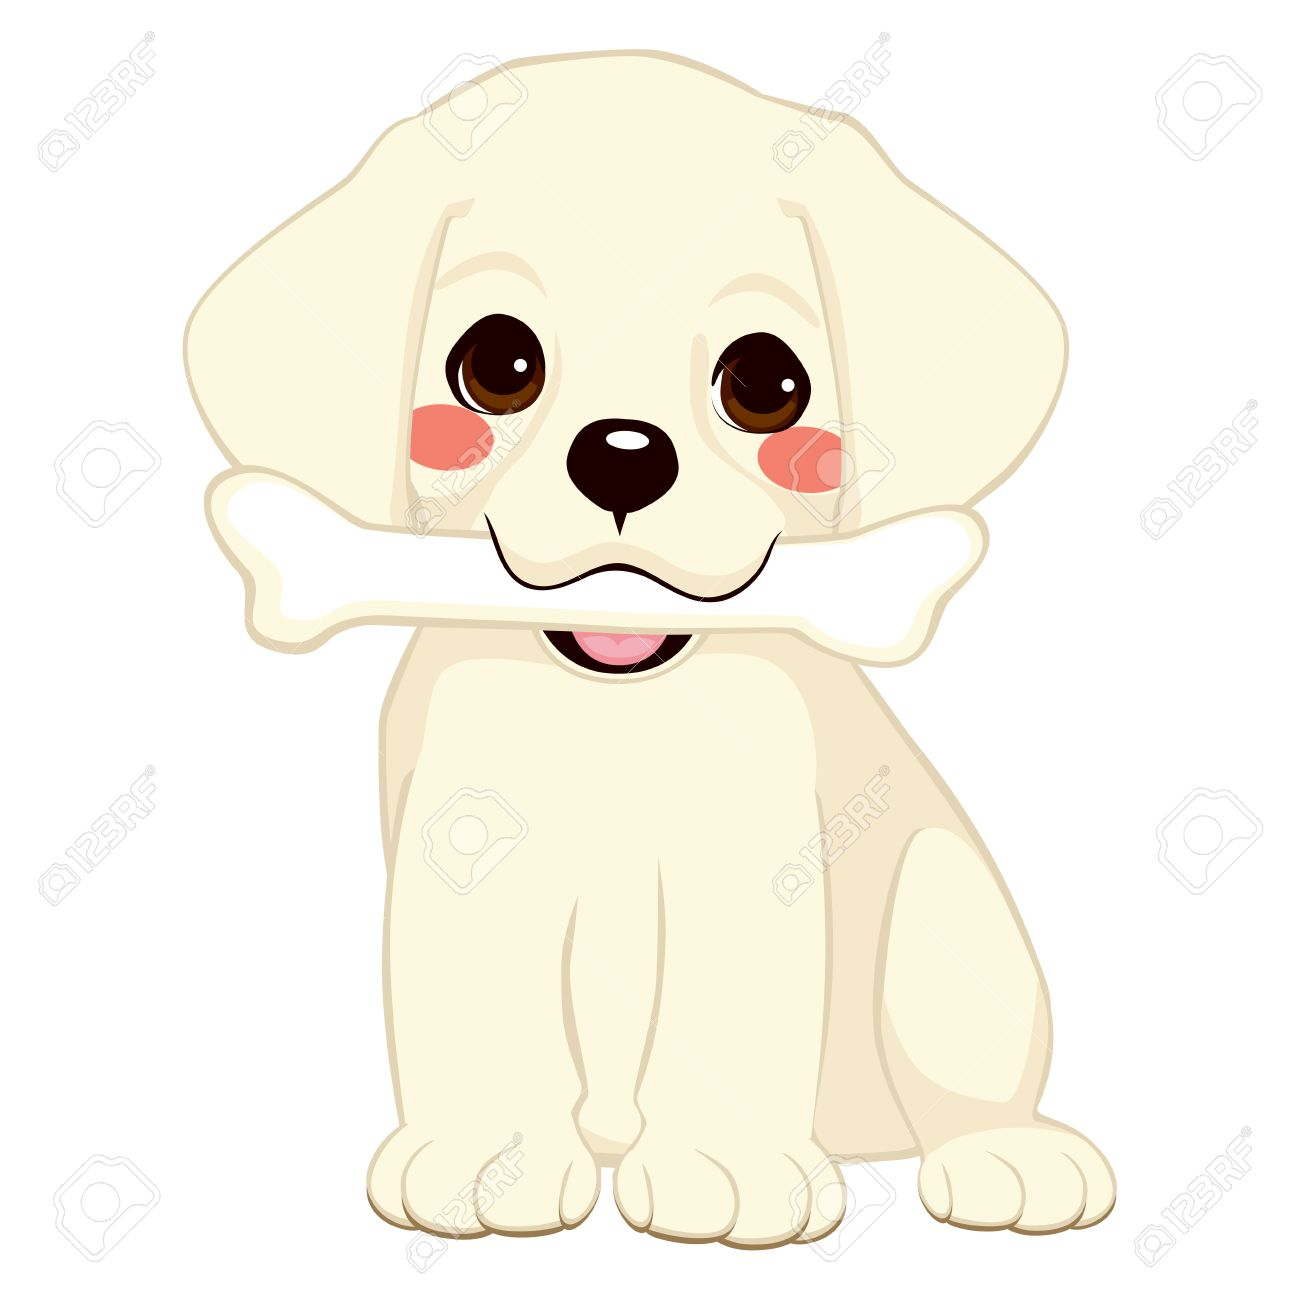 Cute Dog Puppy Labrador Holding Big Bone With Mouth Royalty Free Cliparts Vectors And Stock Illustration Image 27291861